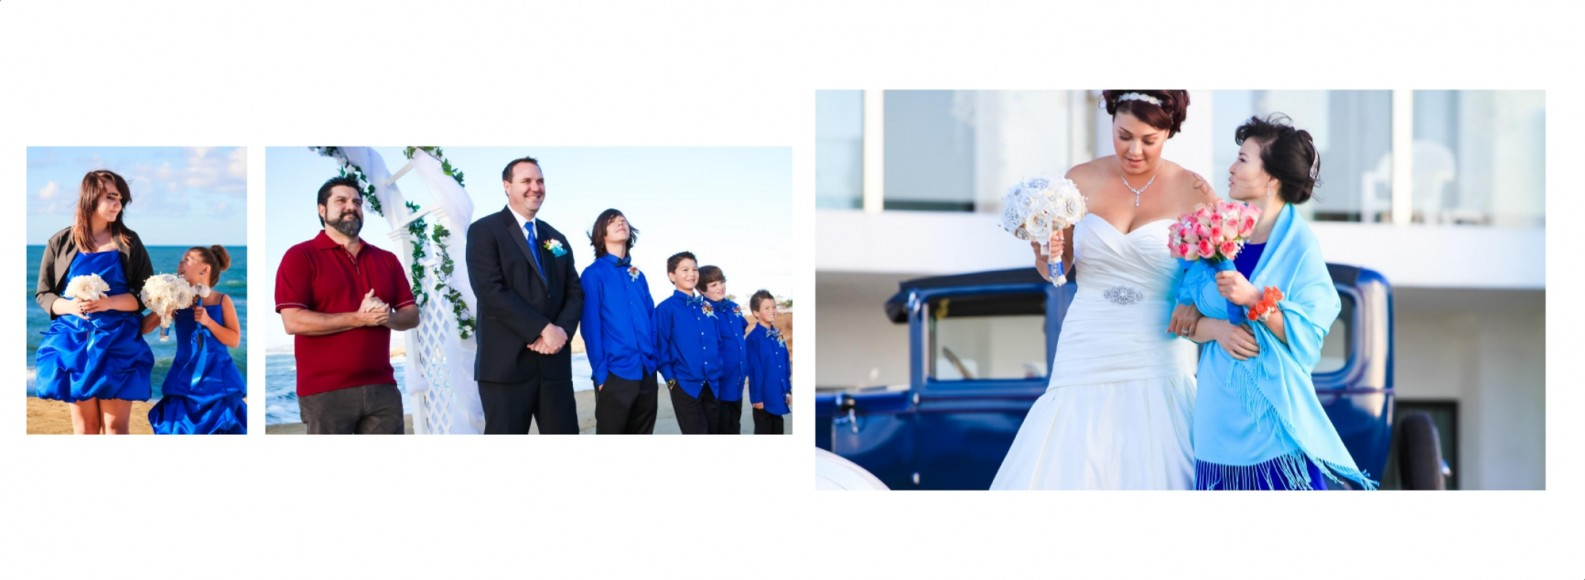 Carrie and Rob Wedding Album by San Diego Wedding Photographer-020-021